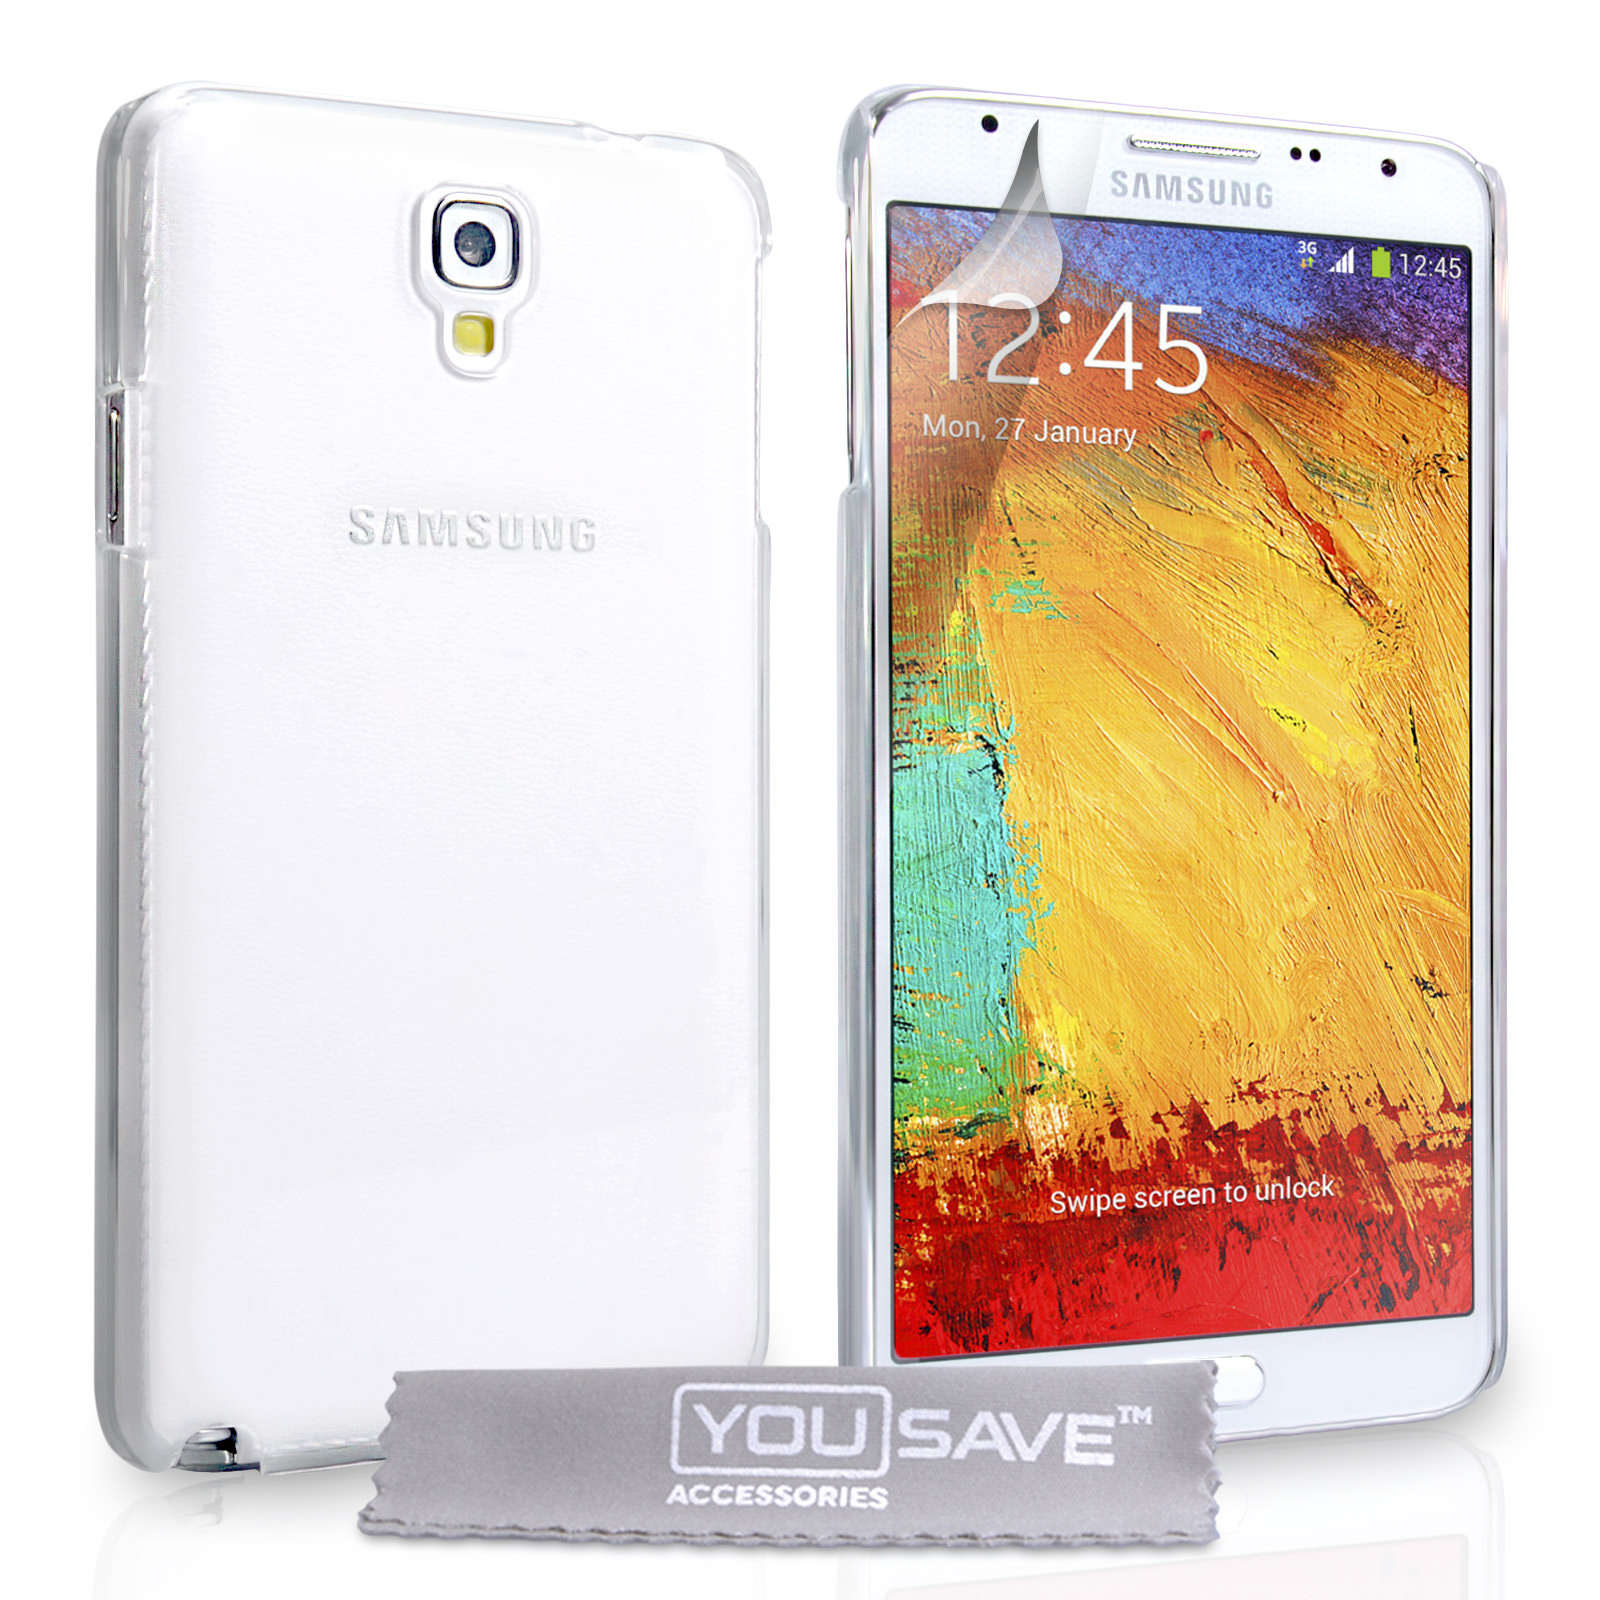 YouSave Samsung Galaxy Note 3 Neo Hard Case - Crystal Clear